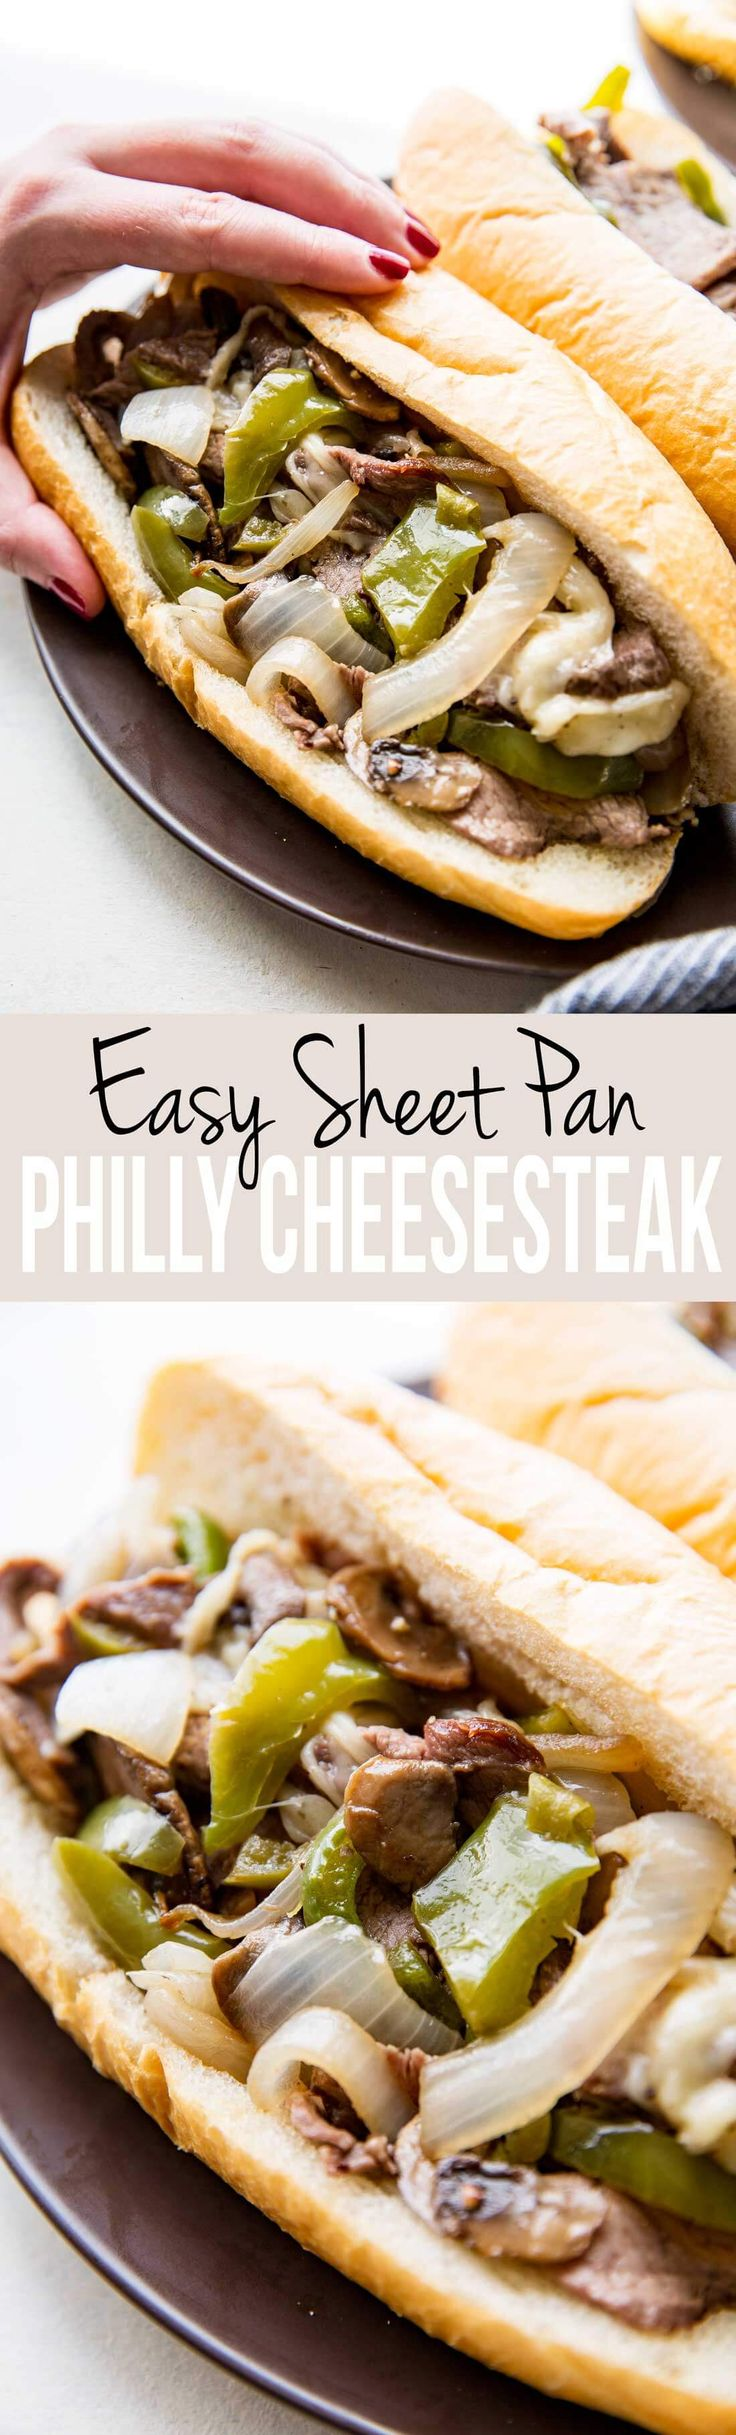 We are these so fast. So easy. So good. Philly Cheesesteak made on a sheet pan